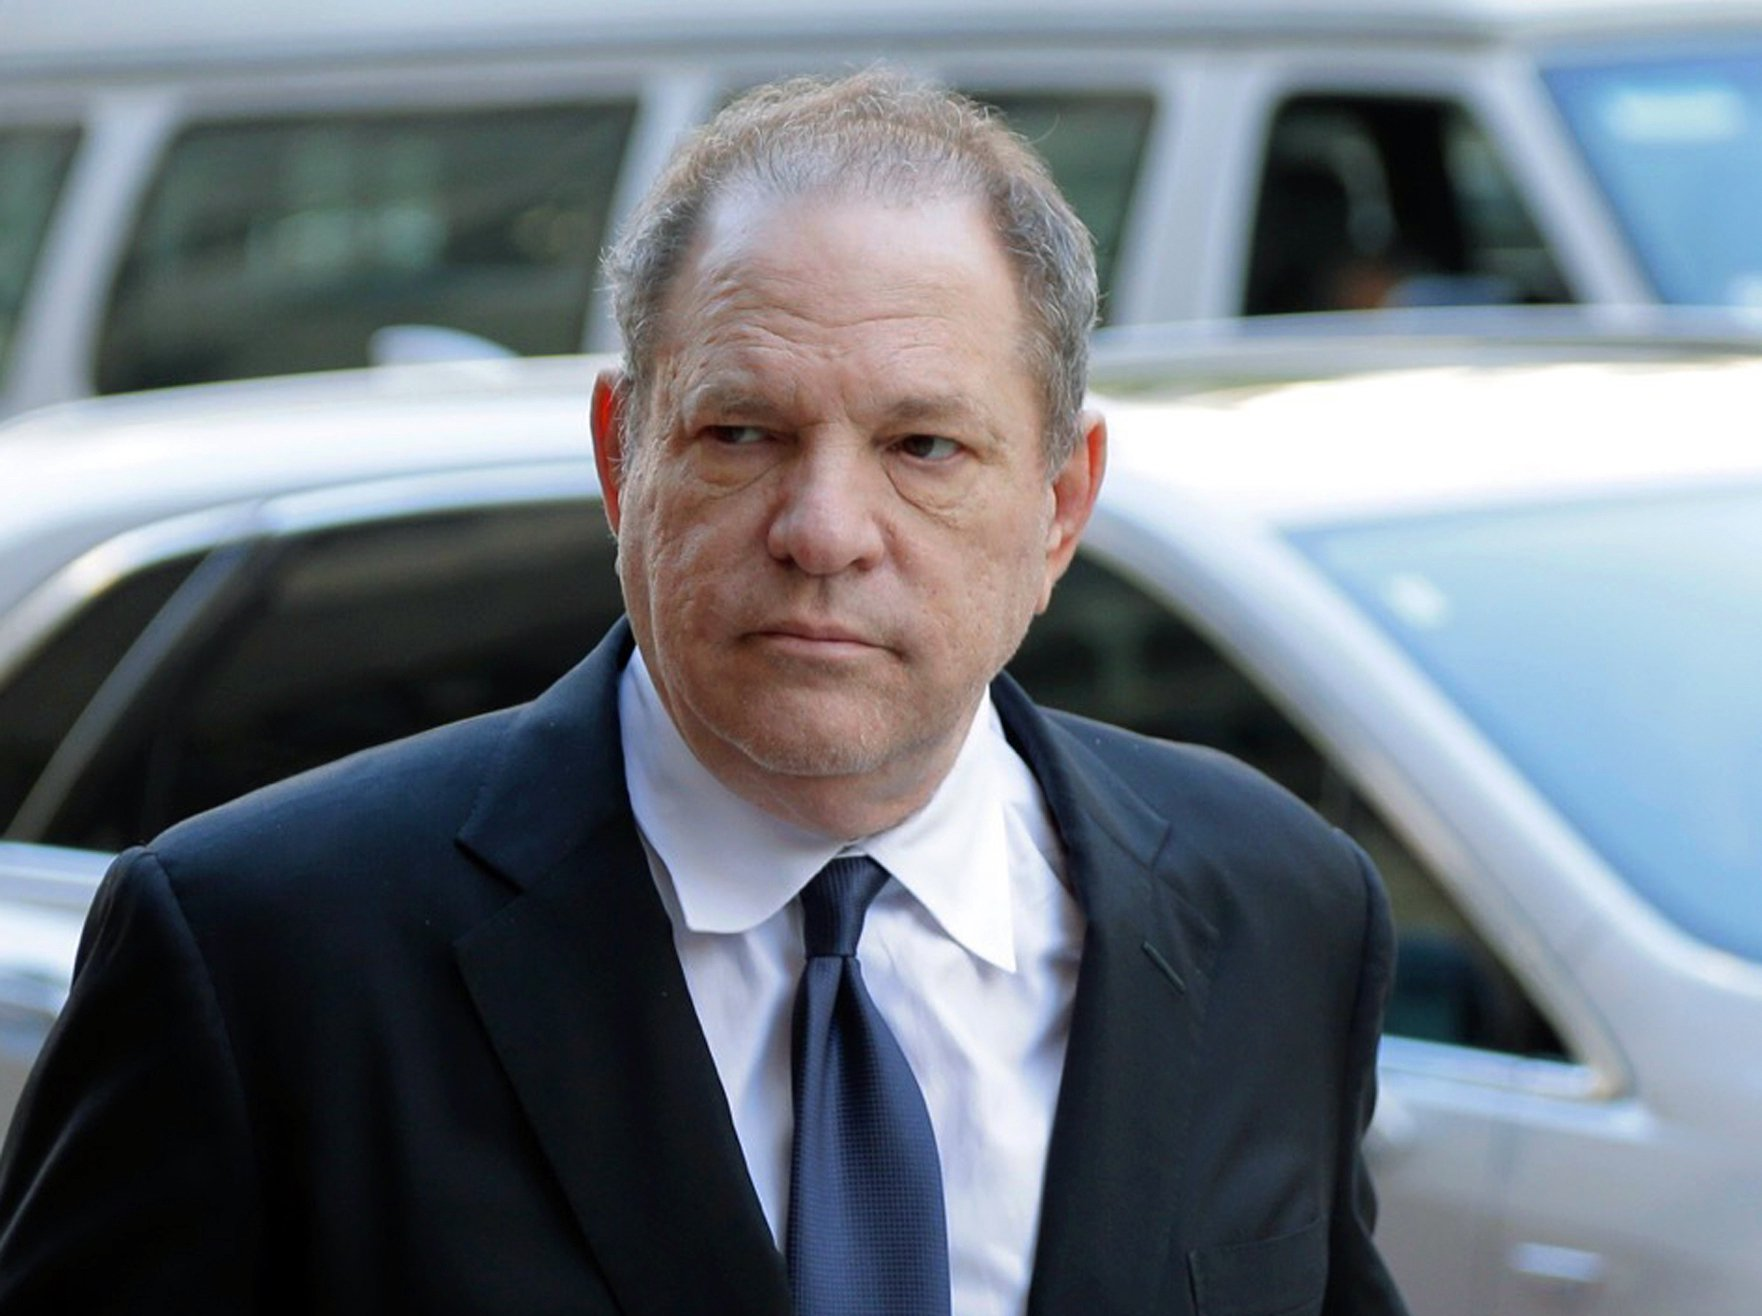 Harvey Weinstein accused of sexually assaulting 16-year-old in 2002